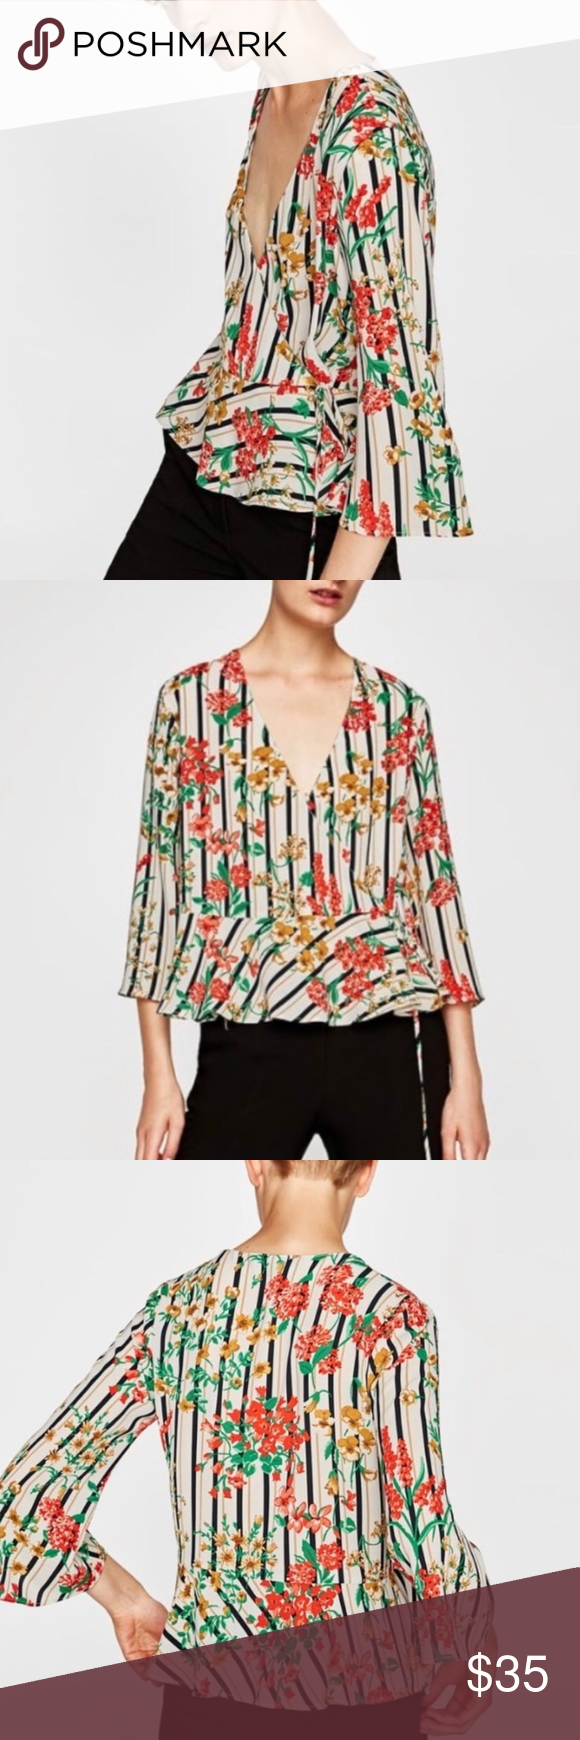 e097cf0b Zara striped floral wrap front top Beautiful striped and floral Zara tie  front top Lightweight and feminine Wear on it's own or paired with a  camisole ...